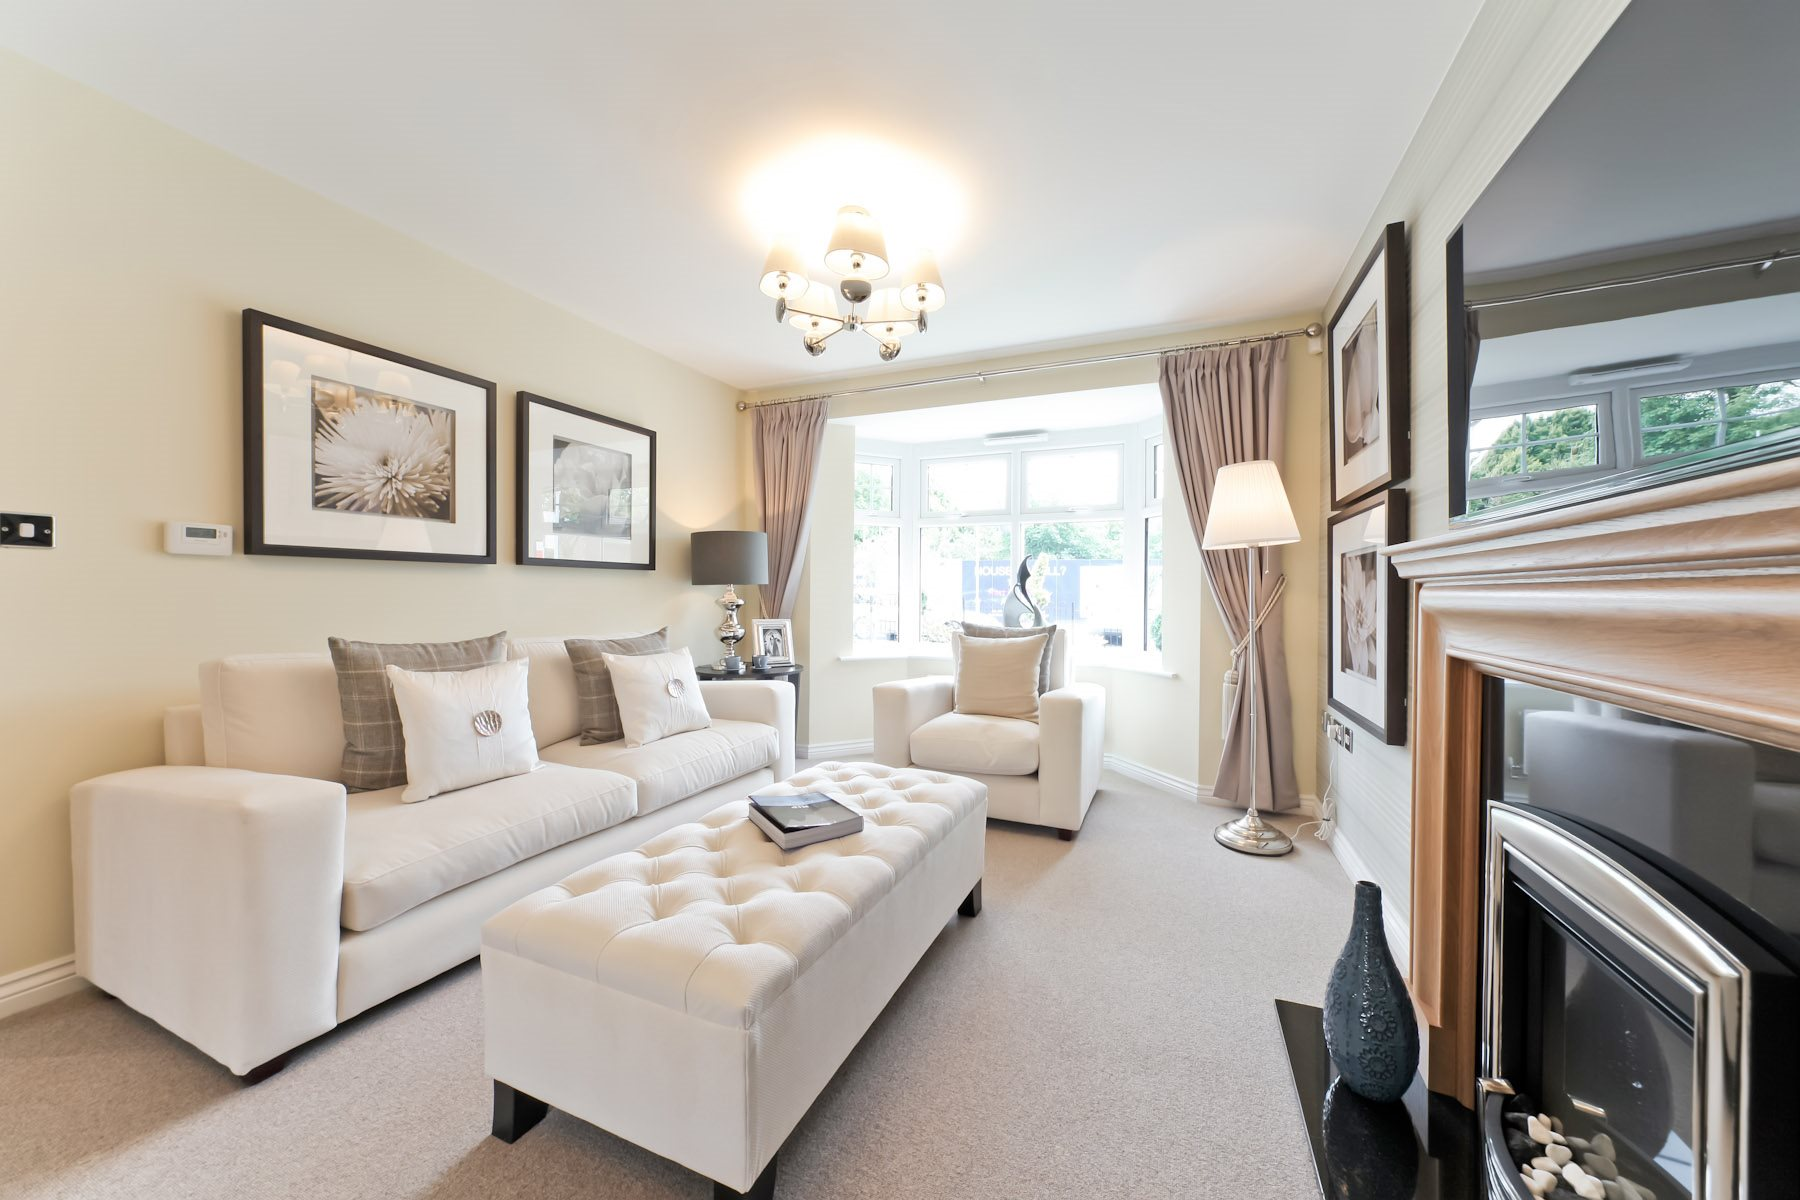 007_BH_Downham_Living_Room